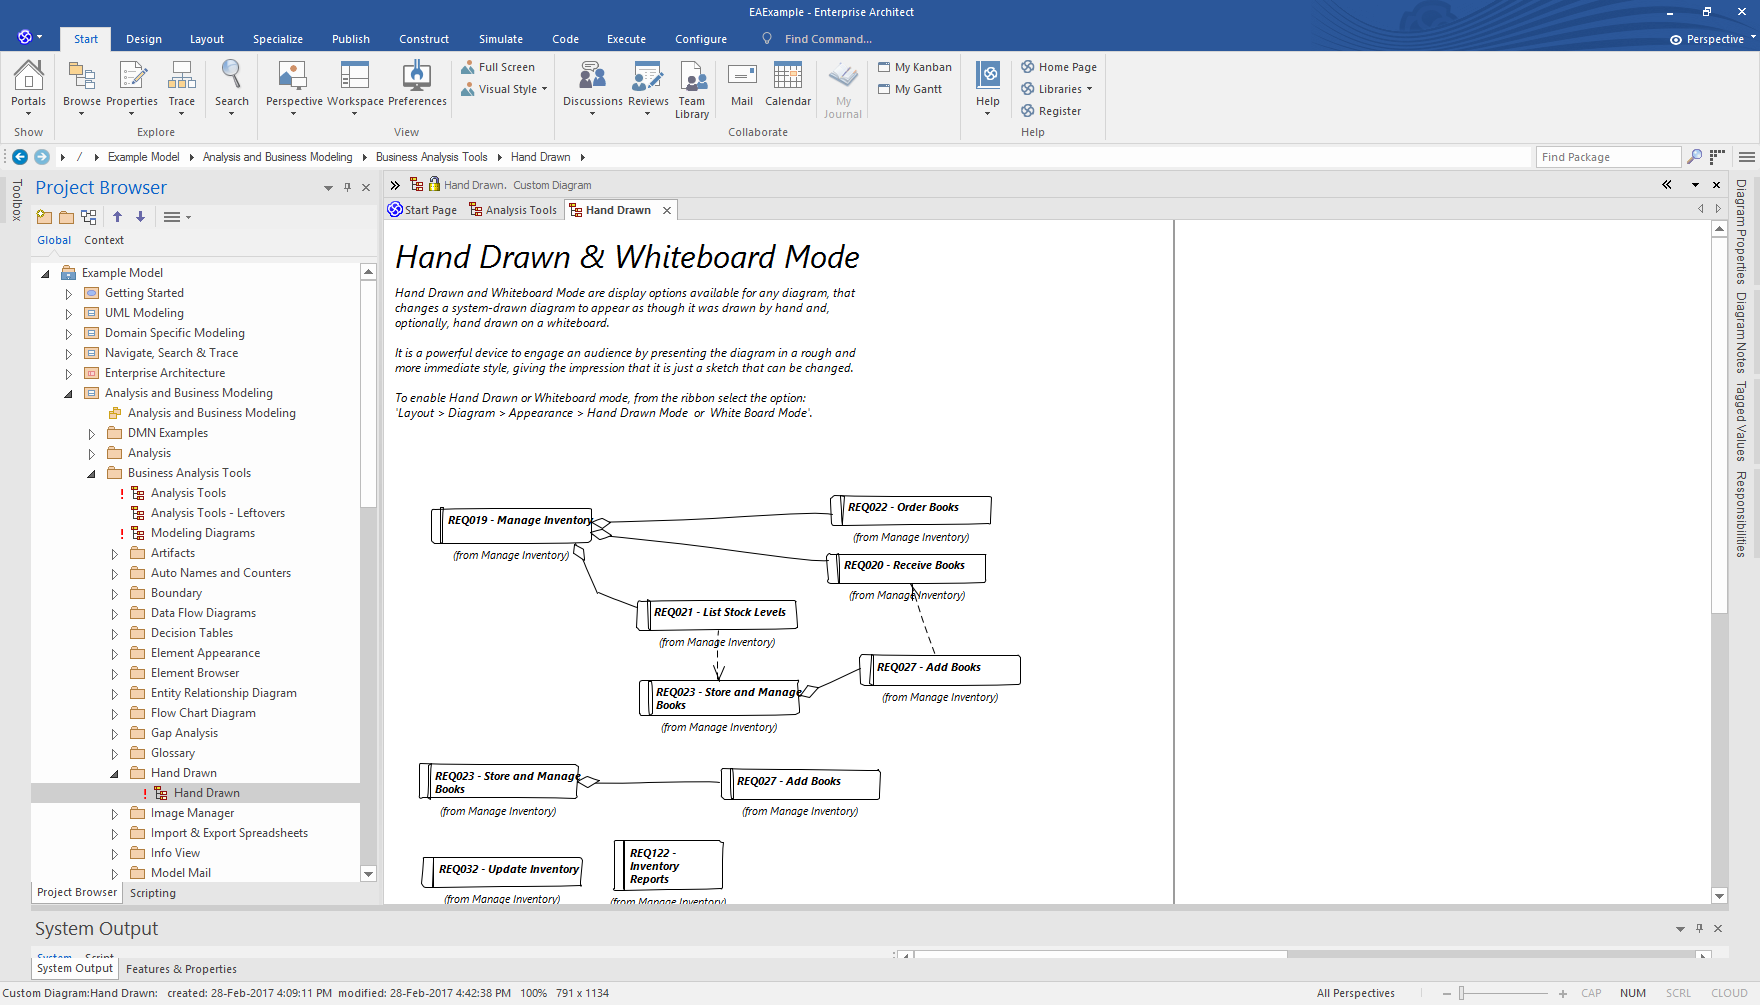 Enterprise Architect Professional Edition: Hand Drawn Mode for diagrams